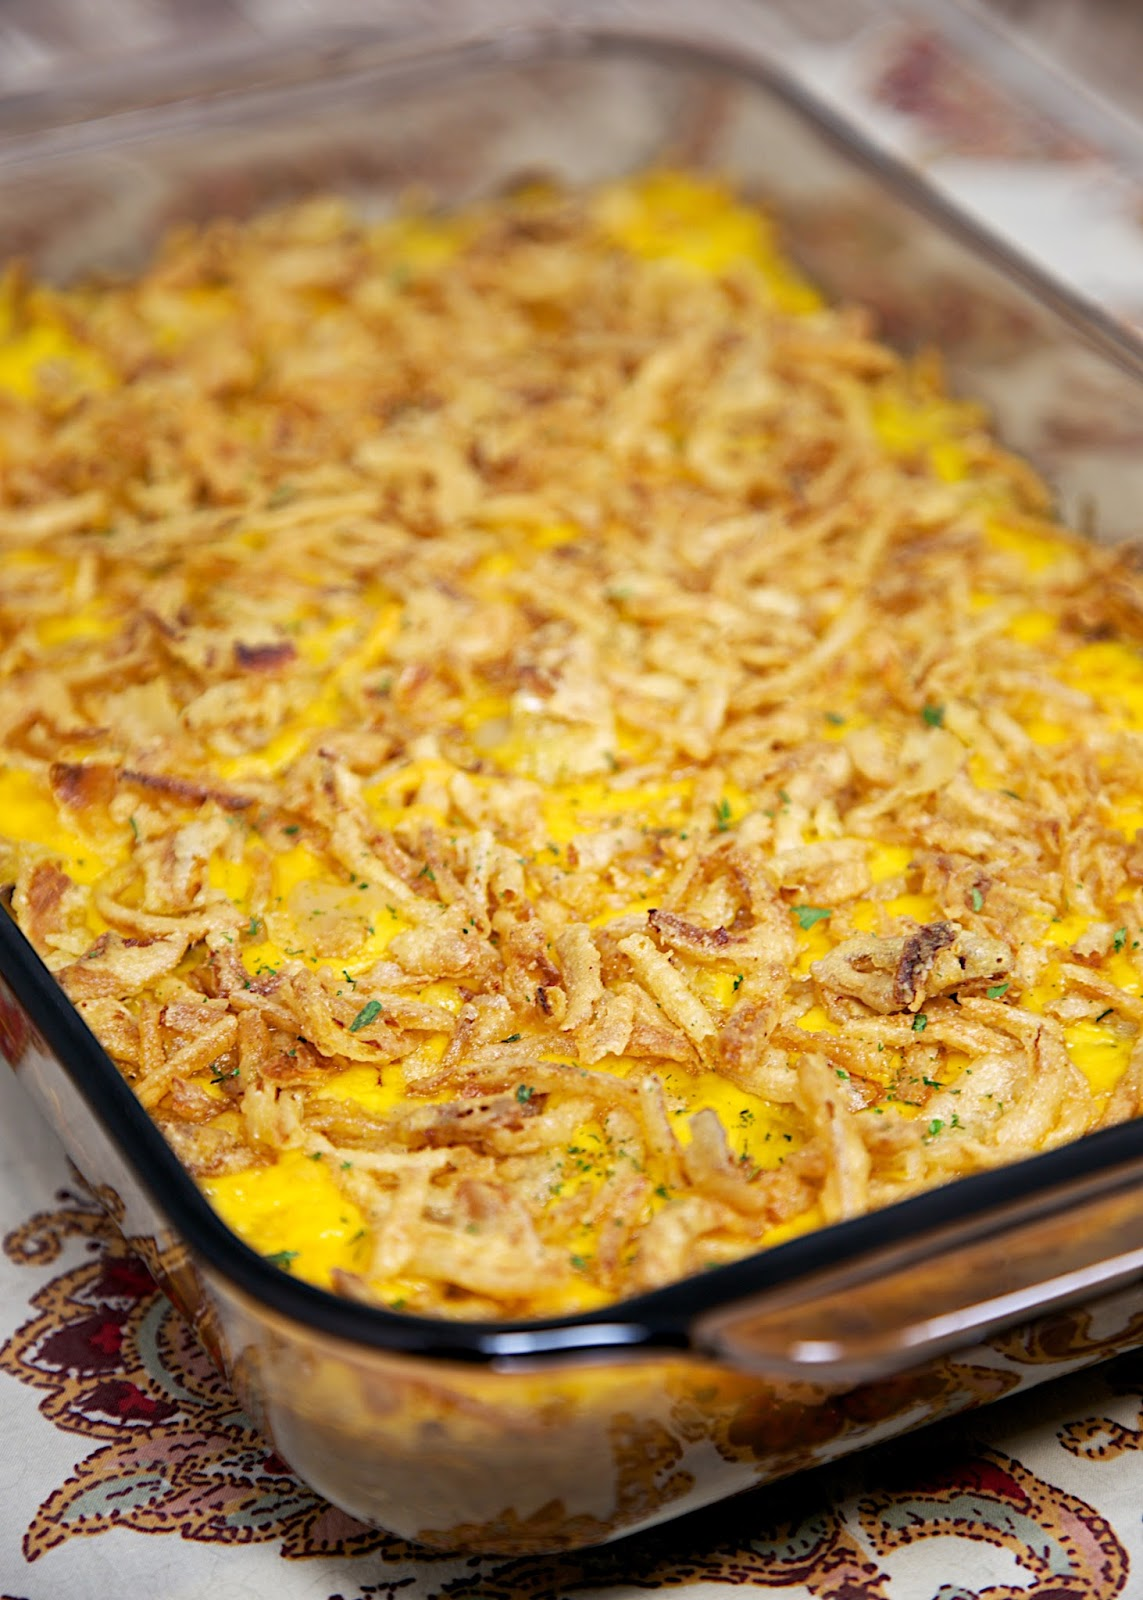 Beefy Rice-A-Roni Casserole Recipe - quick casserole with only 5 ingredients! Hamburger, Rice-A-Roni, chicken soup, cheese and fried onions. Can make ahead and freeze for later!